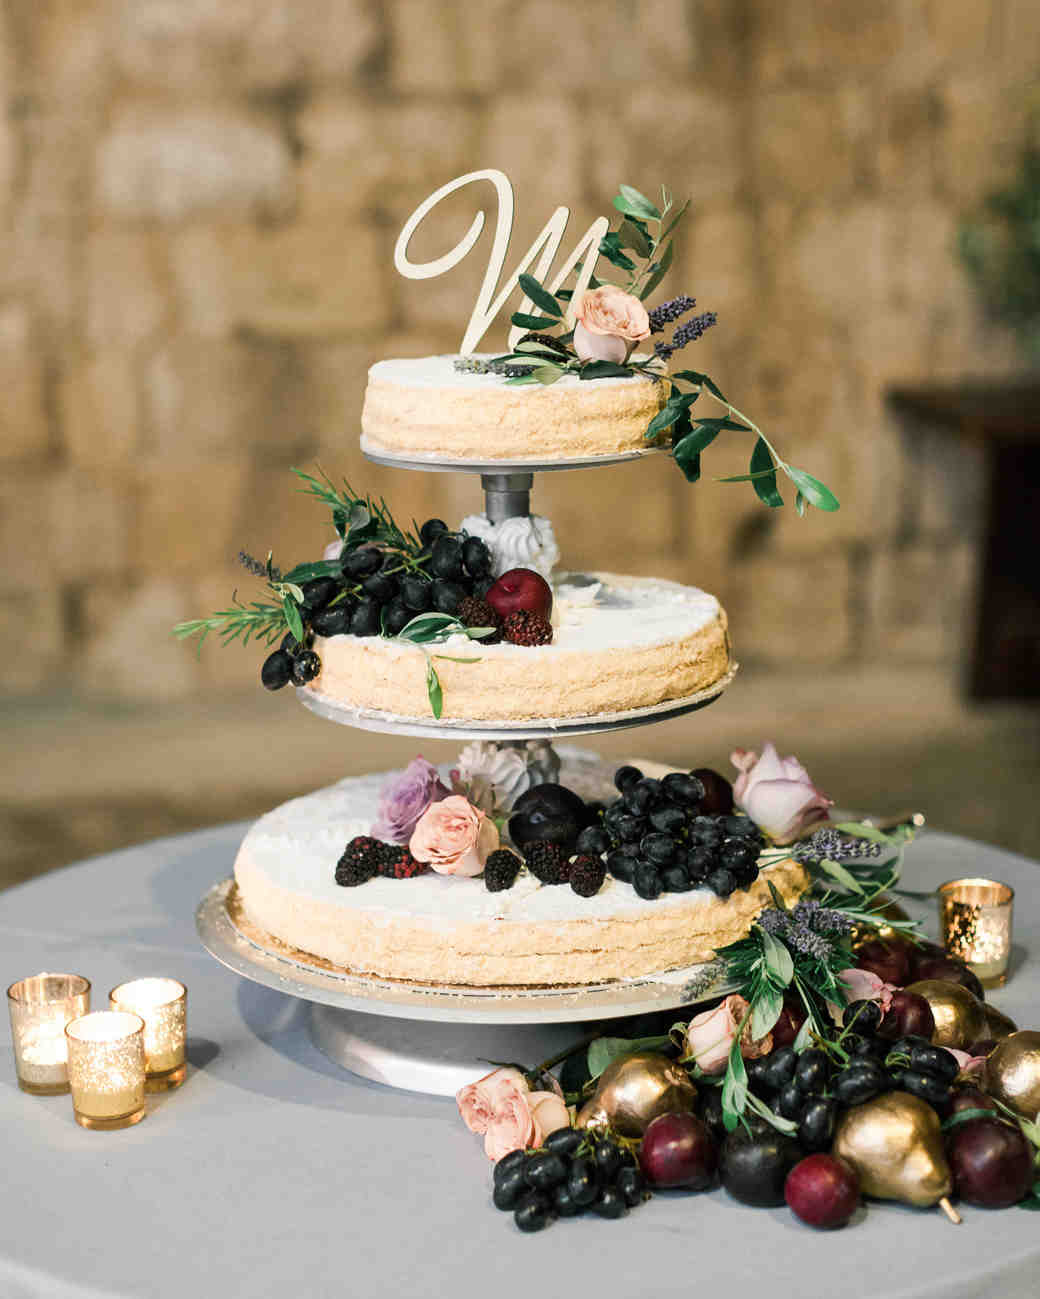 pictures From Wedding Cakes To Wedding Favors, 5 Glamorous Ways To Use Glitter